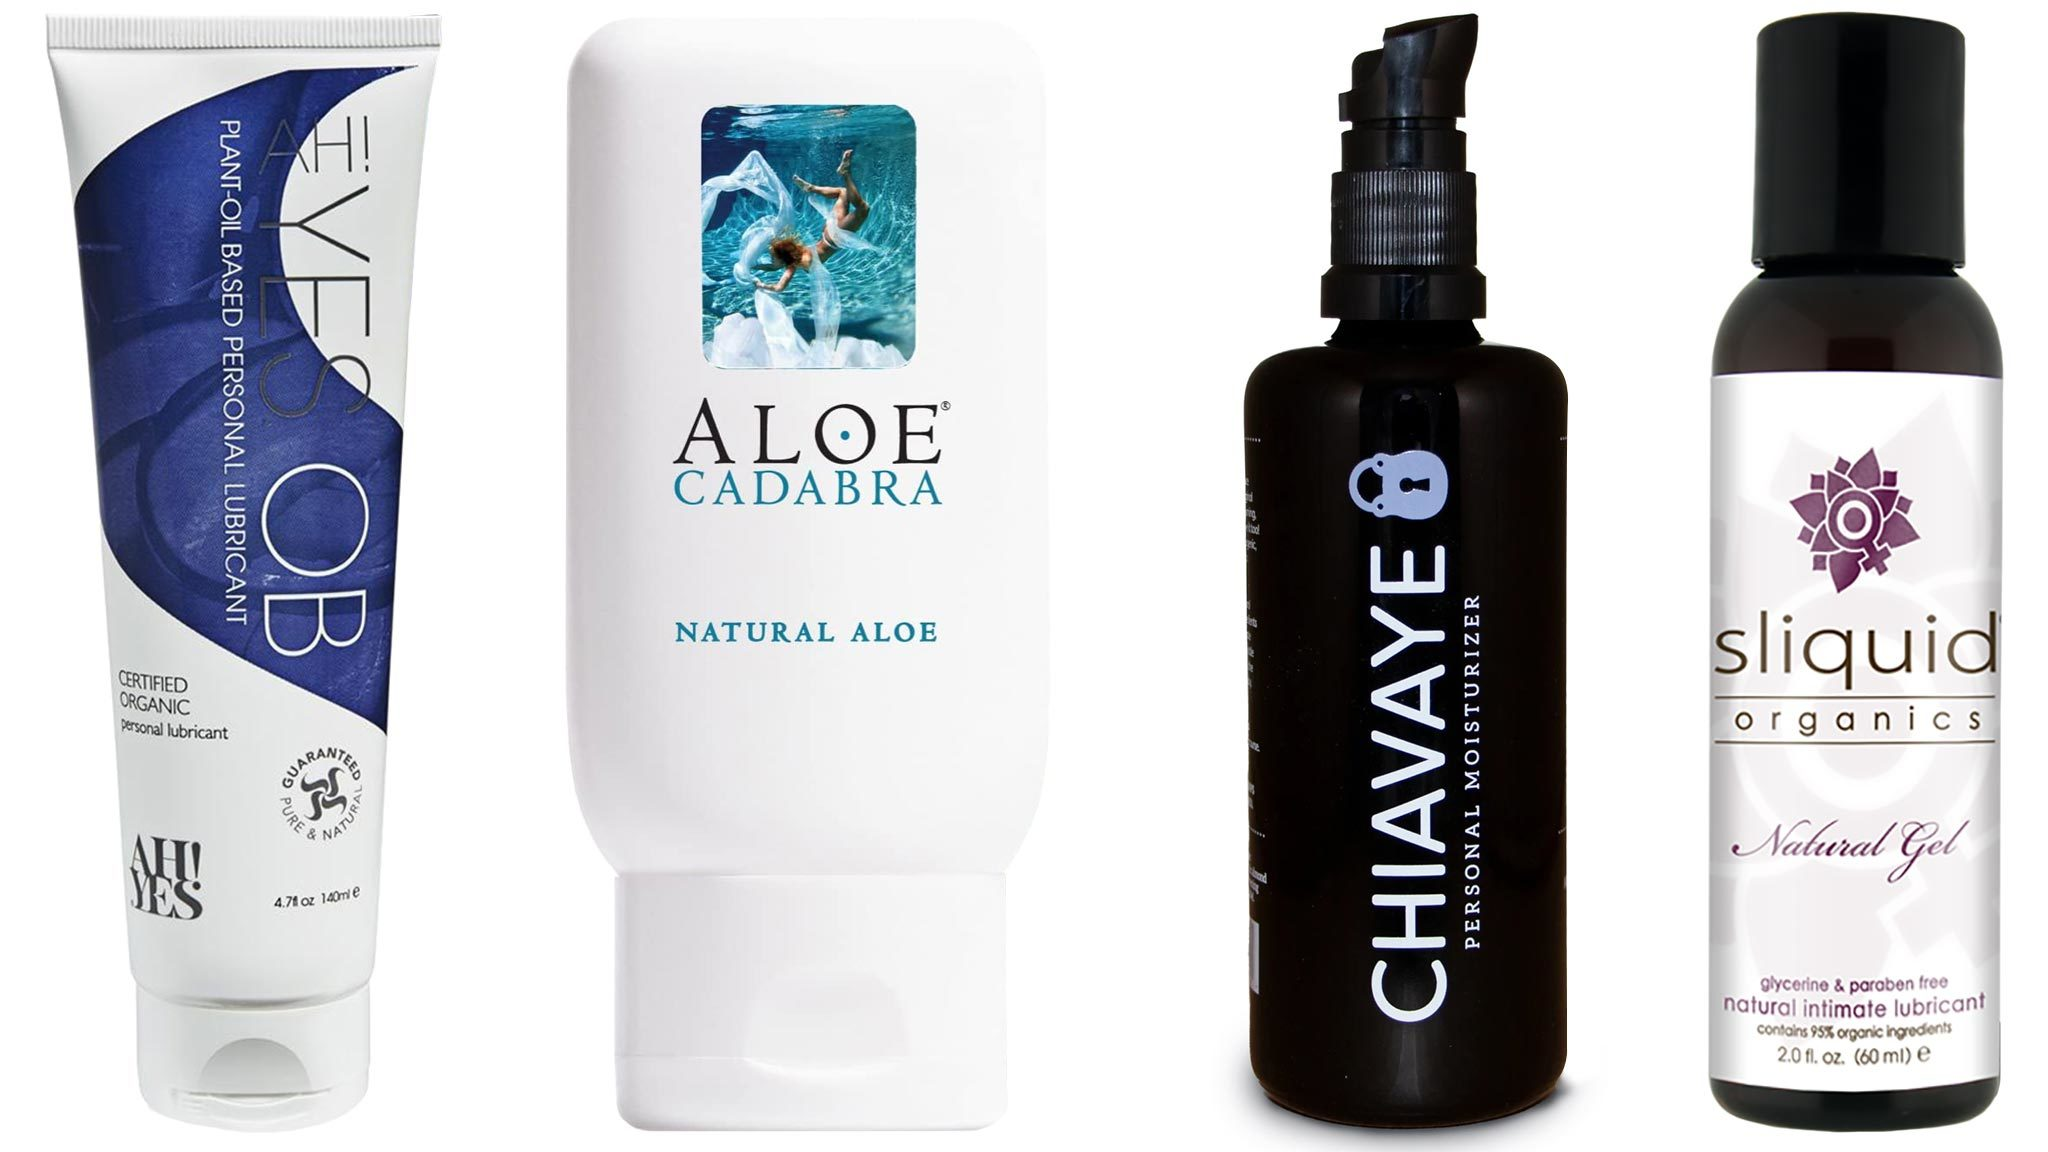 Image Of Four Best Natural And Organic Personal Lubricants: AH! YES OB, Aloe Cadabra, Chiavaye, and Sliquid Organics